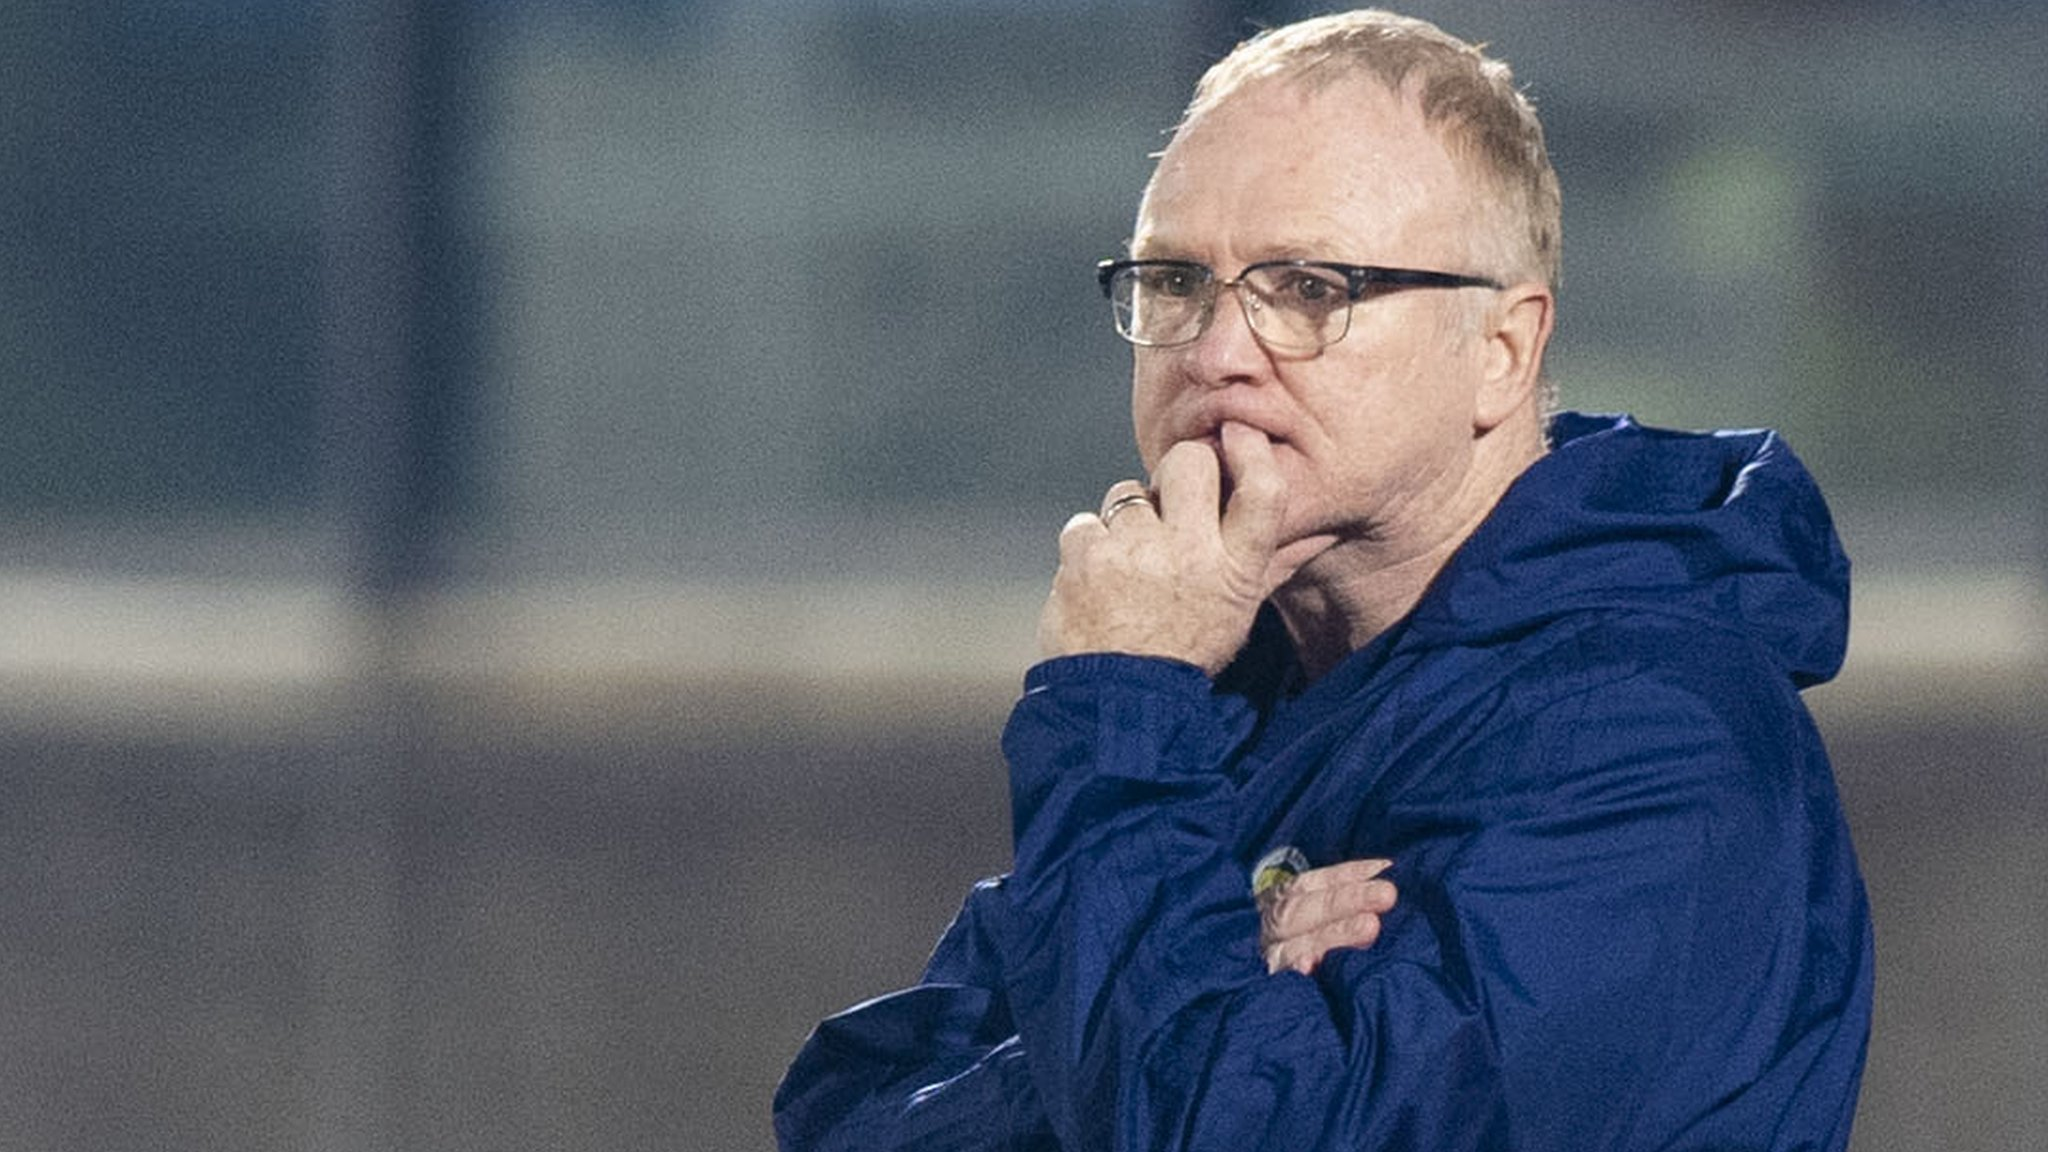 McLeish booed as Scotland labour to win in San Marino